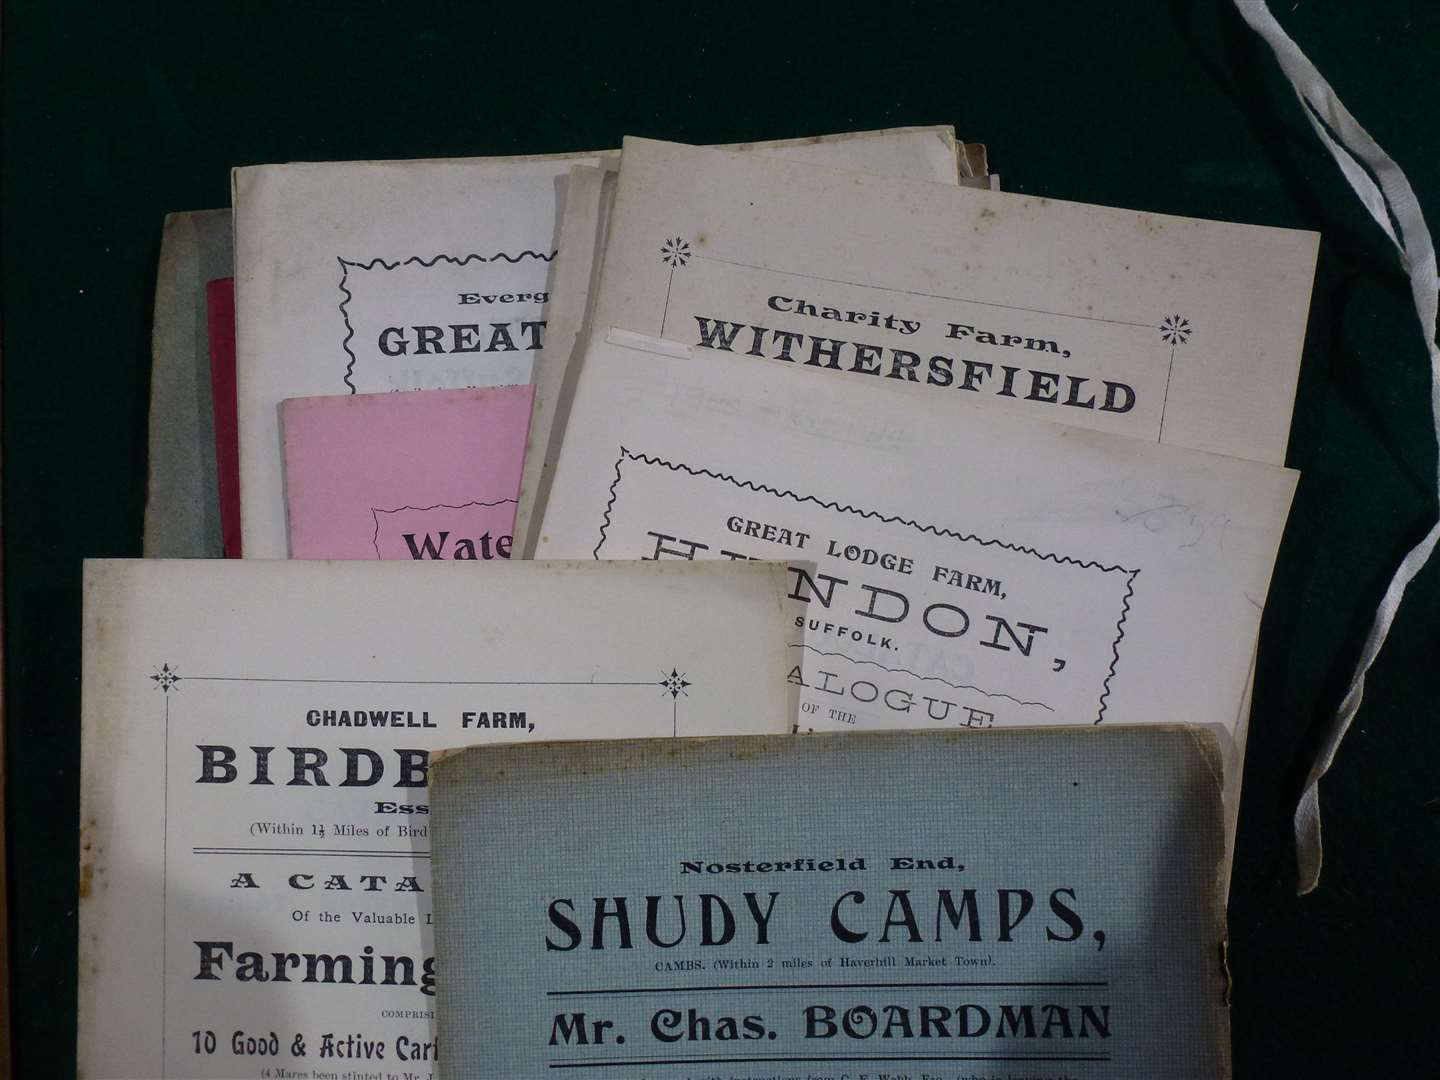 Some of the old catalogues from sales conducted by Chas. Boardman & Sons. Picture by Neil Lanham